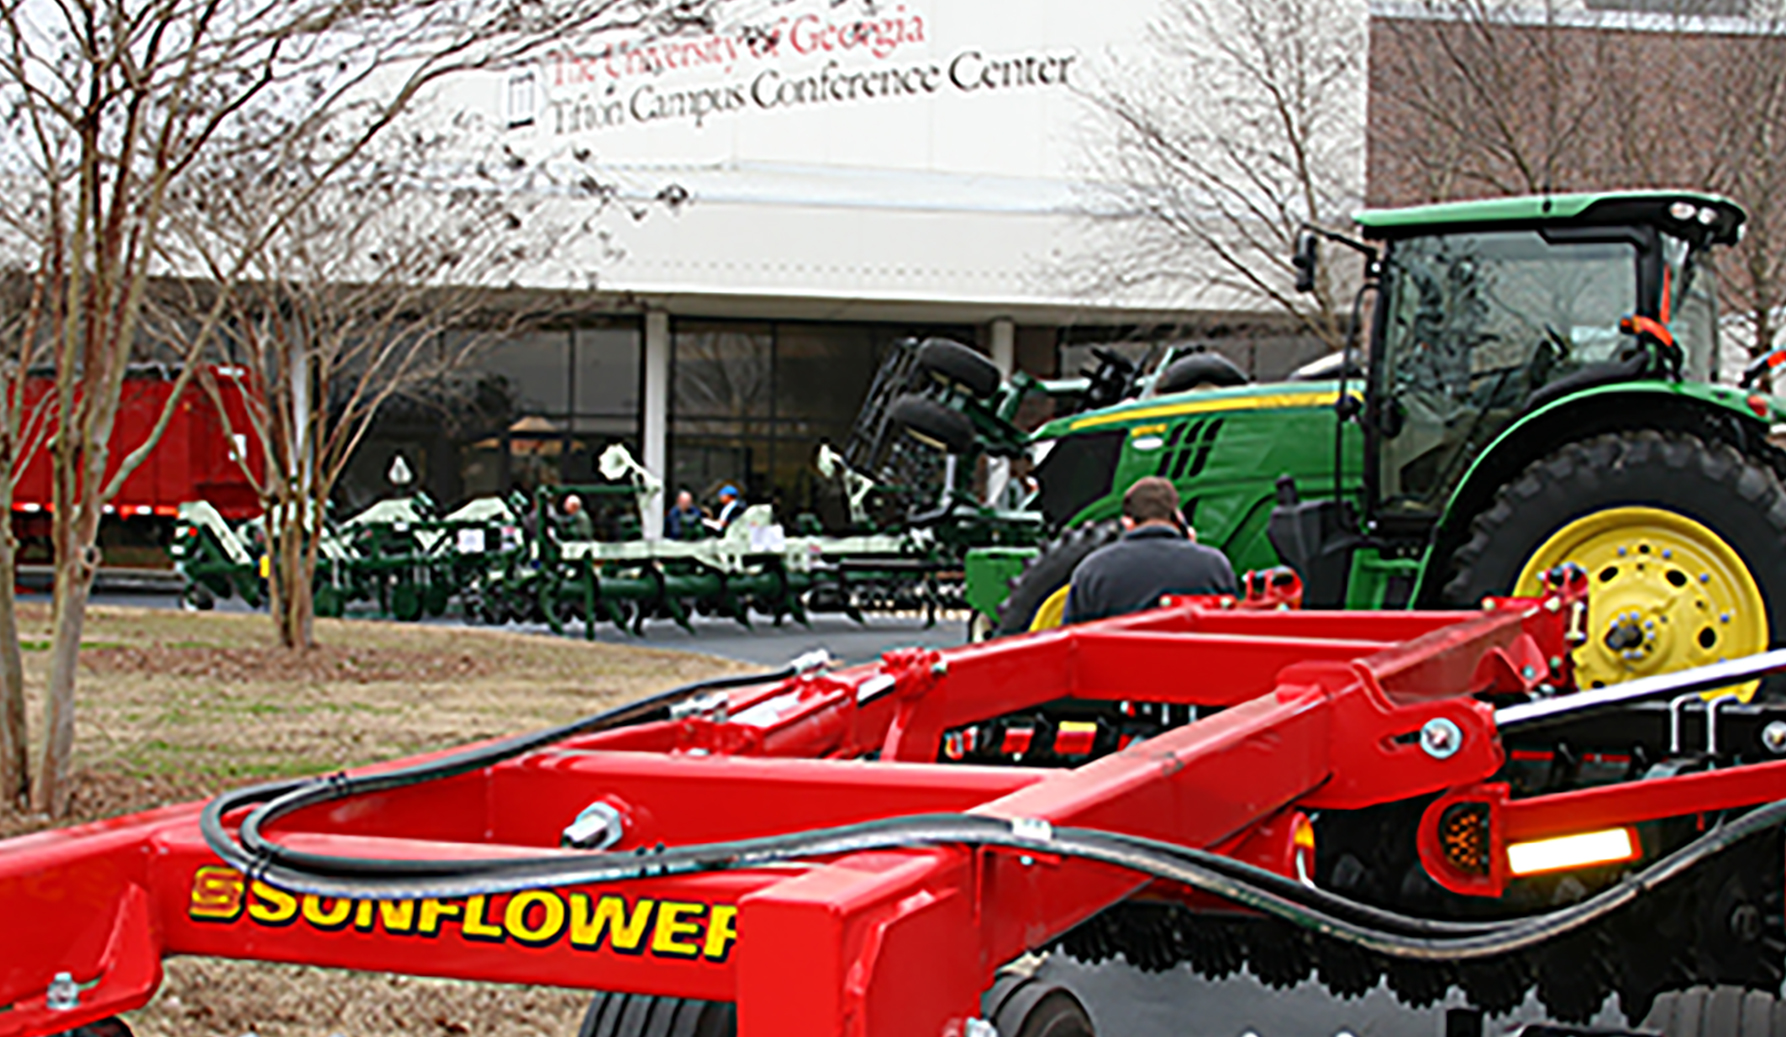 The annual Georgia Peanut Farm Show was held Jan. 15 at the UGA Tifton Campus Conference Center.